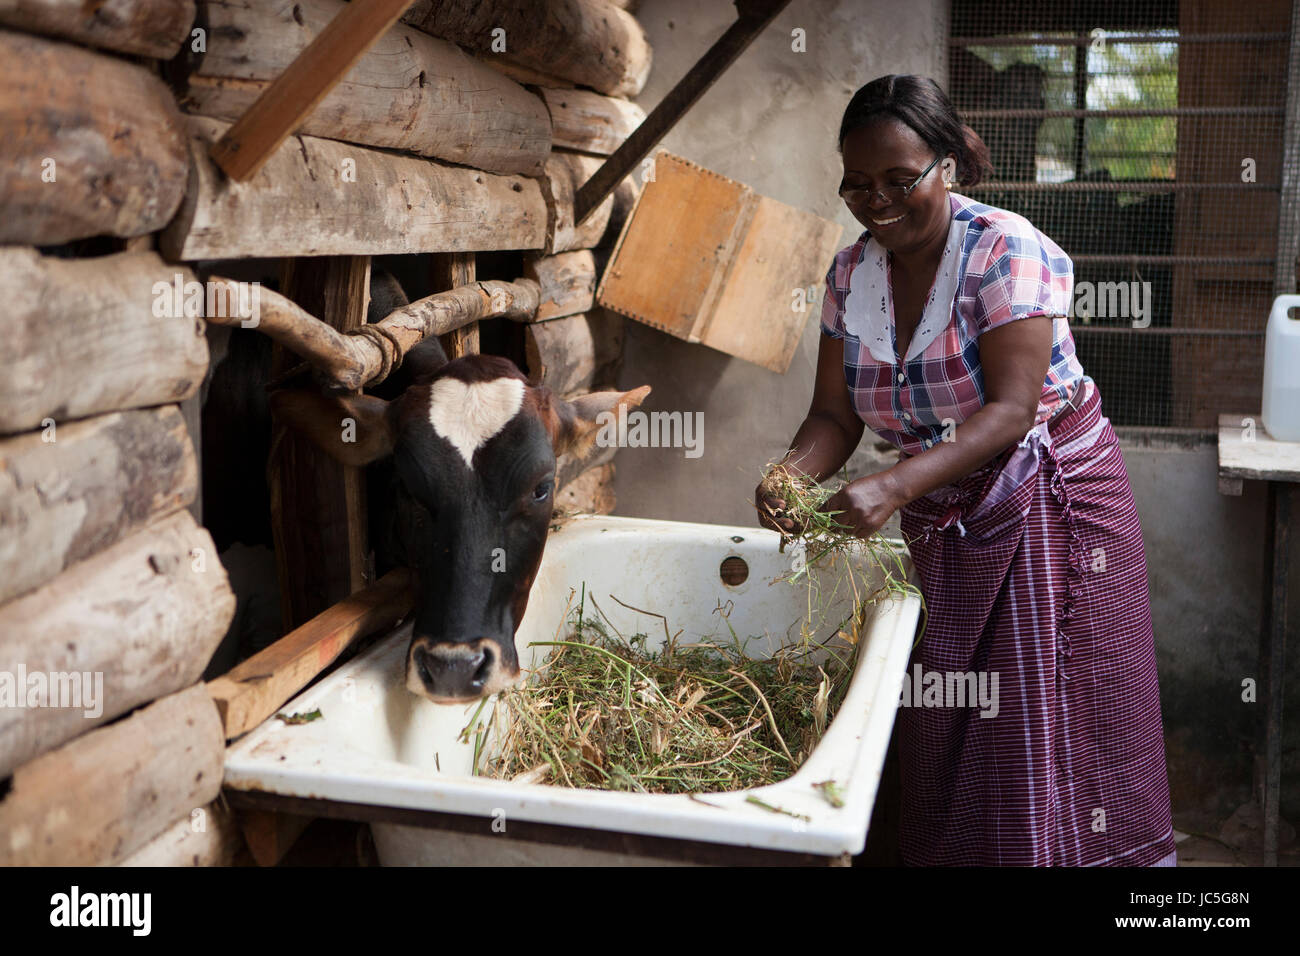 A female small business farmer feeding her cow, Tanzania, Africa. - Stock Image